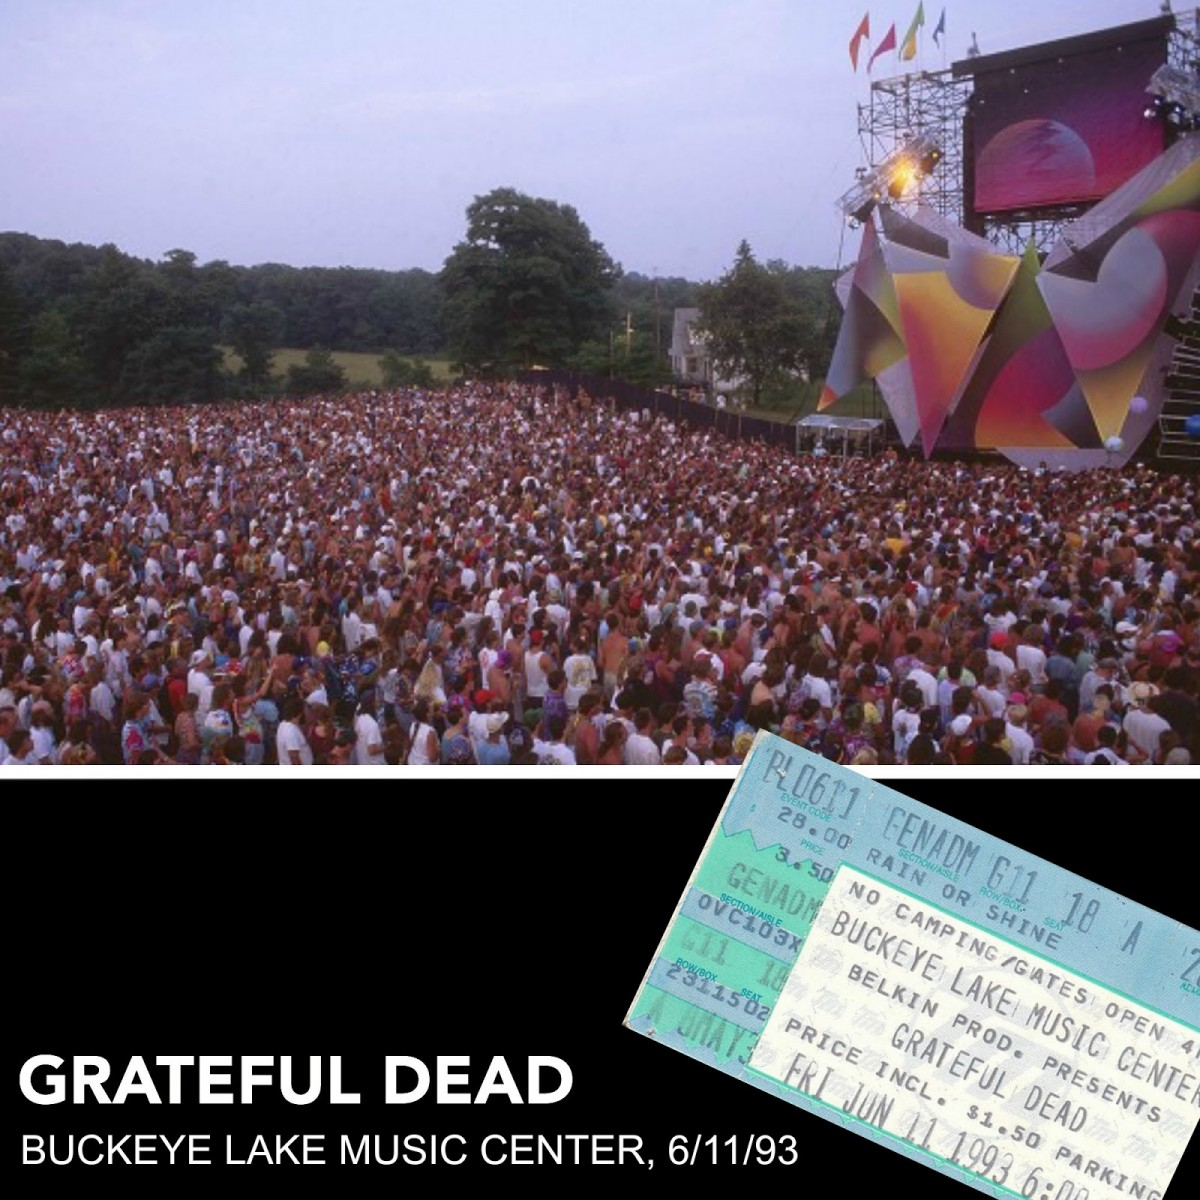 Dark Star Orchestra to Recreate Epic Grateful Dead '93 Buckeye Lake Show at Same Venue During Dark Star Jubilee Festival; Festival Schedule Announced